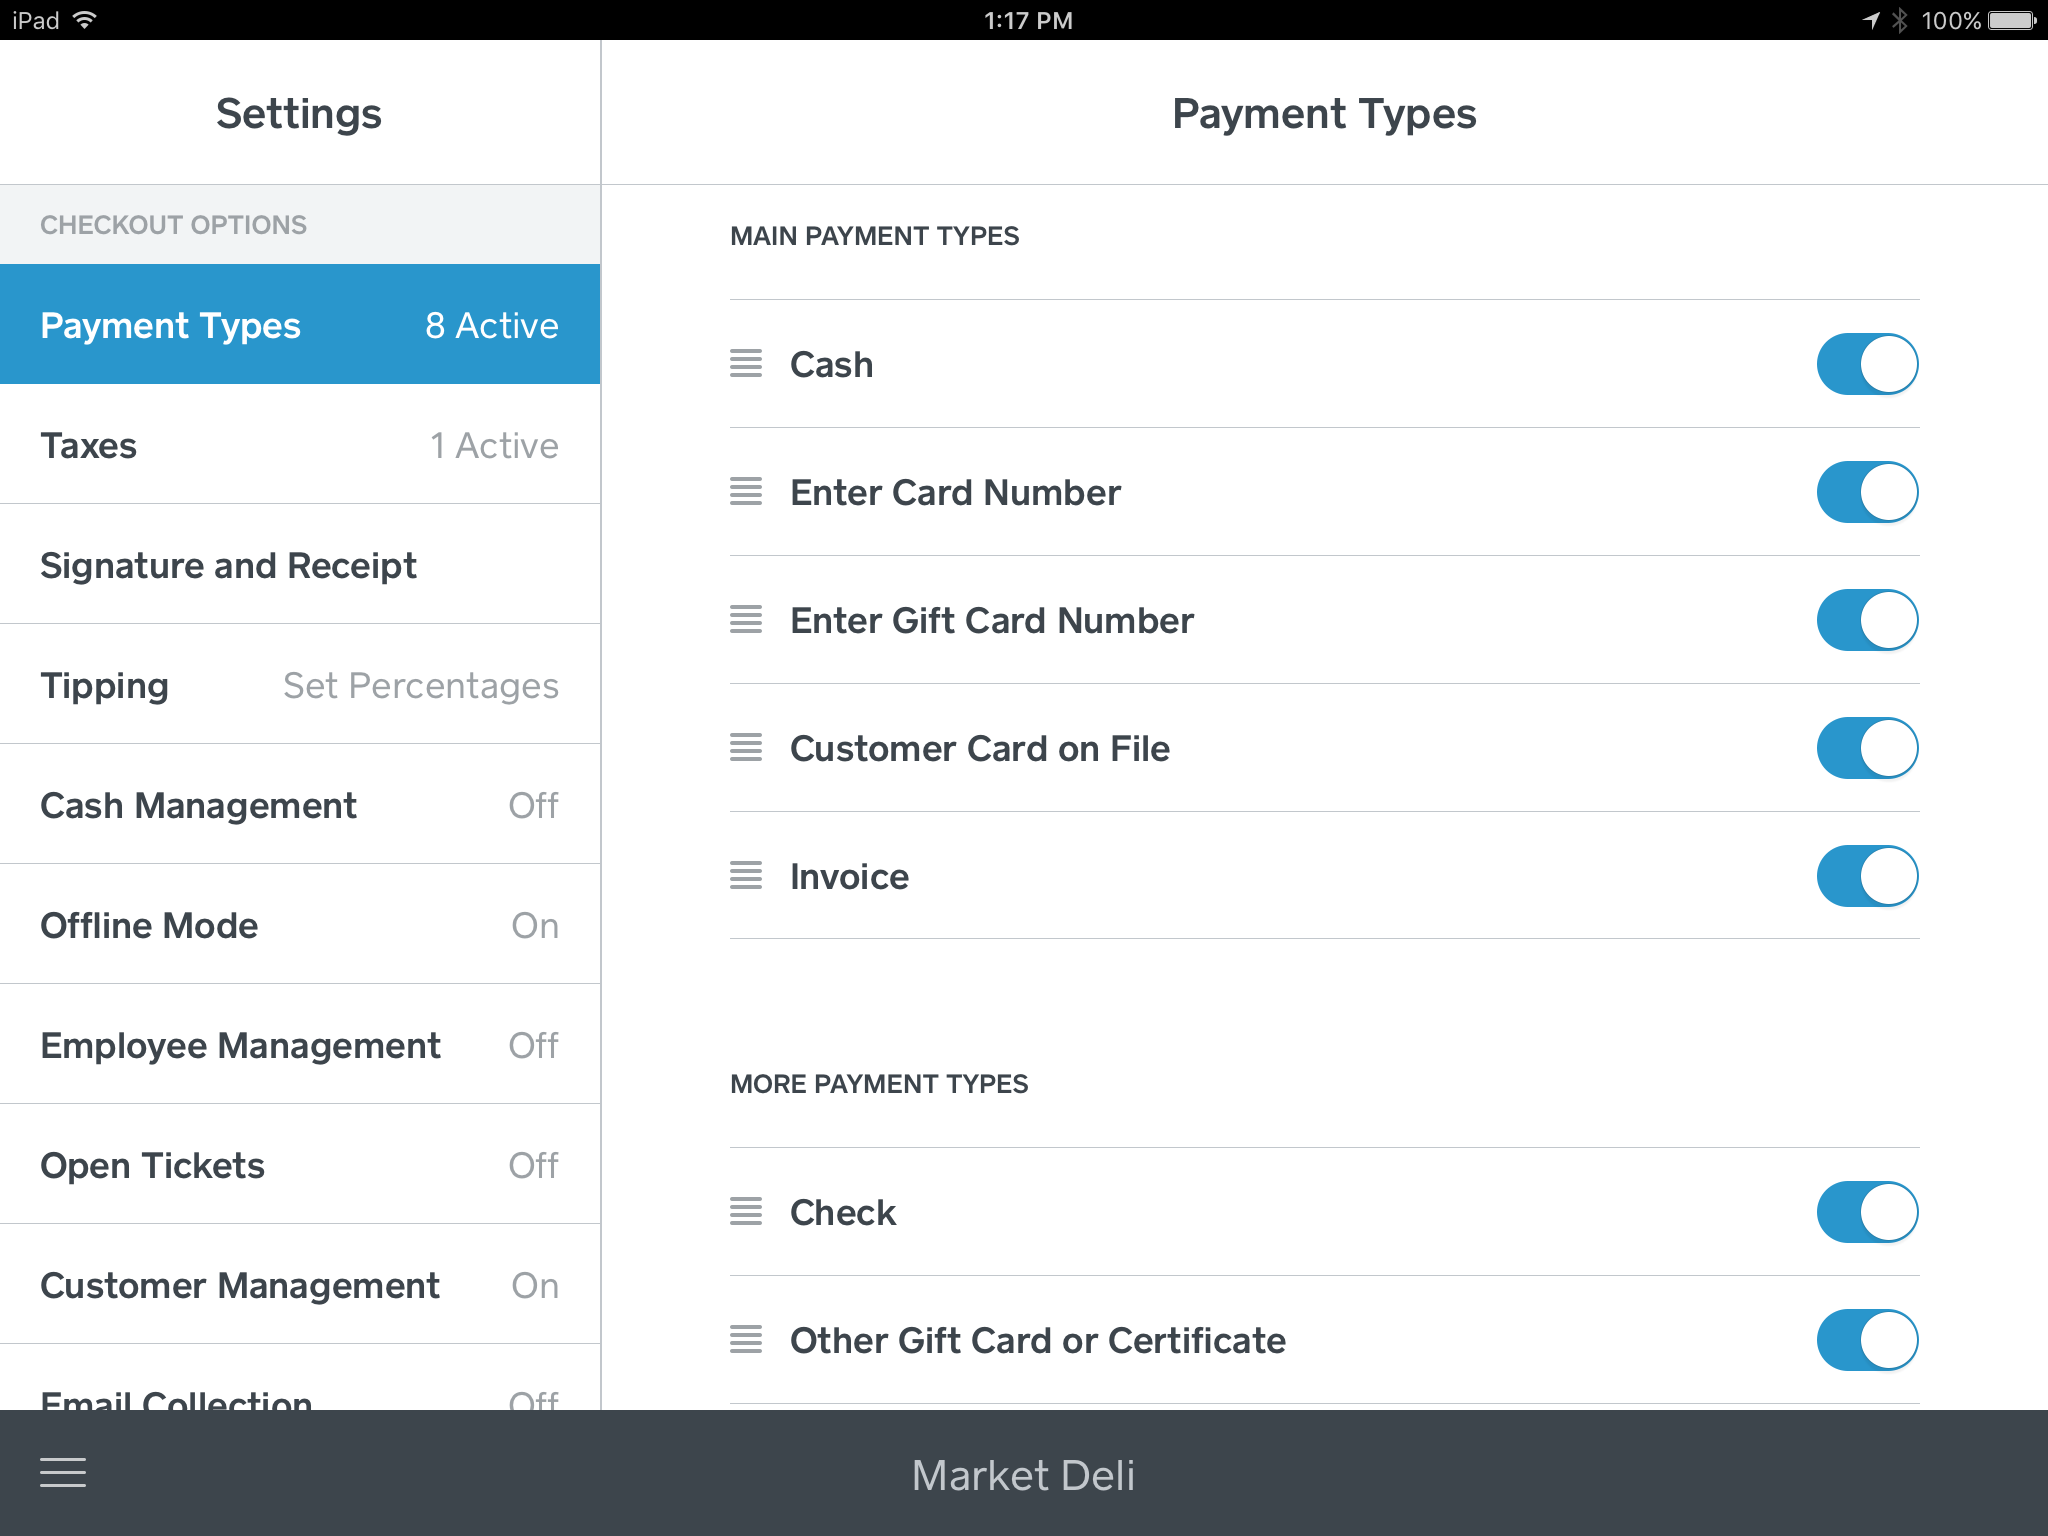 Payment Type Options in iOS